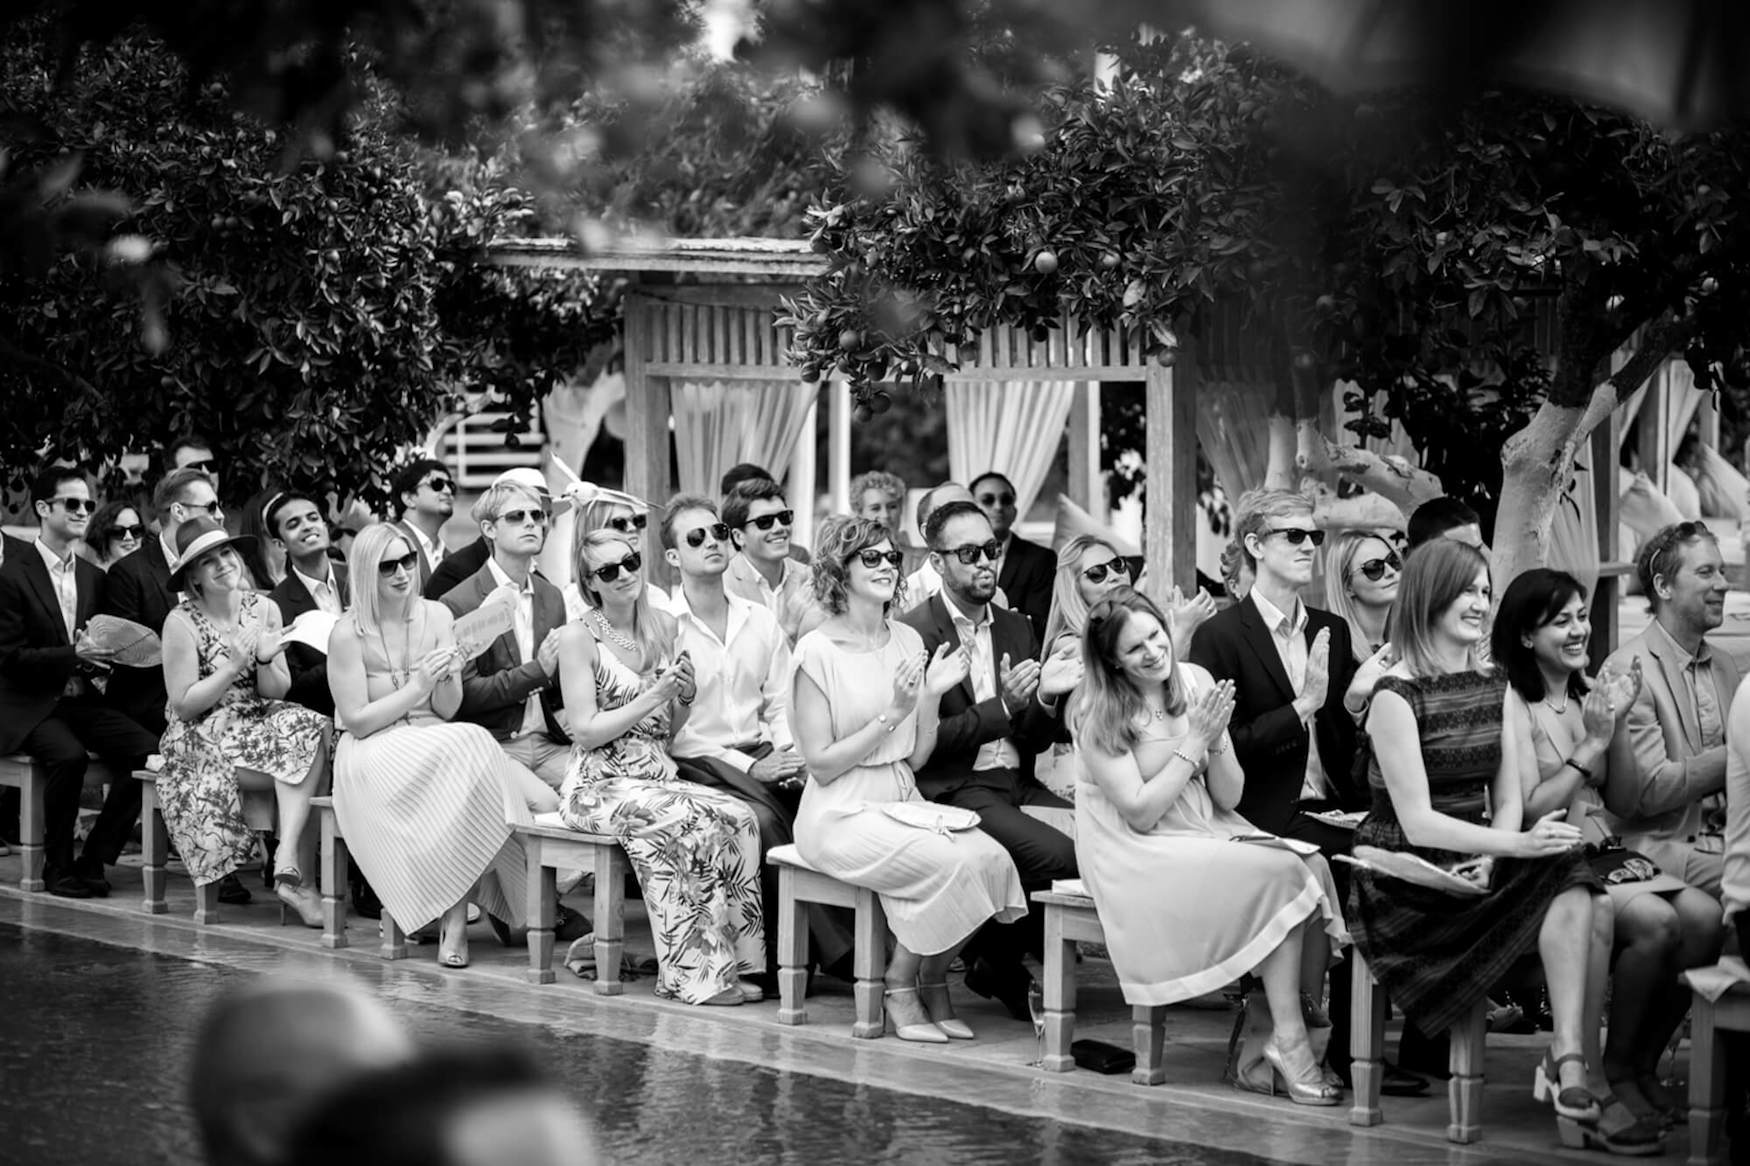 wedding guest clapping poolside ceremony